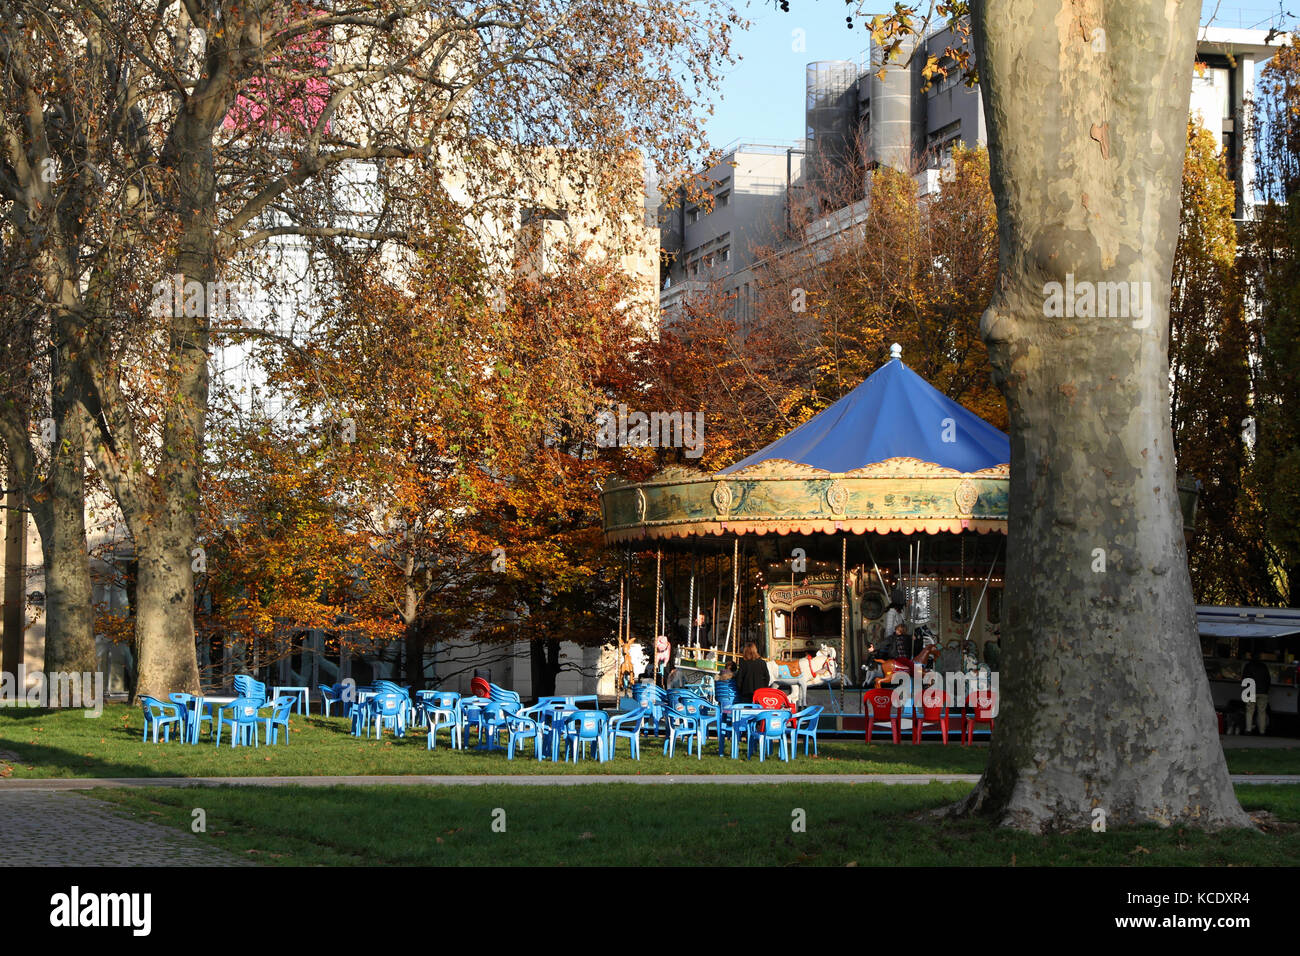 PARIS, FRANCE, NOVEMBER 27 - Merry-Go-Round in the park of Bercy, on November 27, 2013 in Paris, France. Parc de - Stock Image